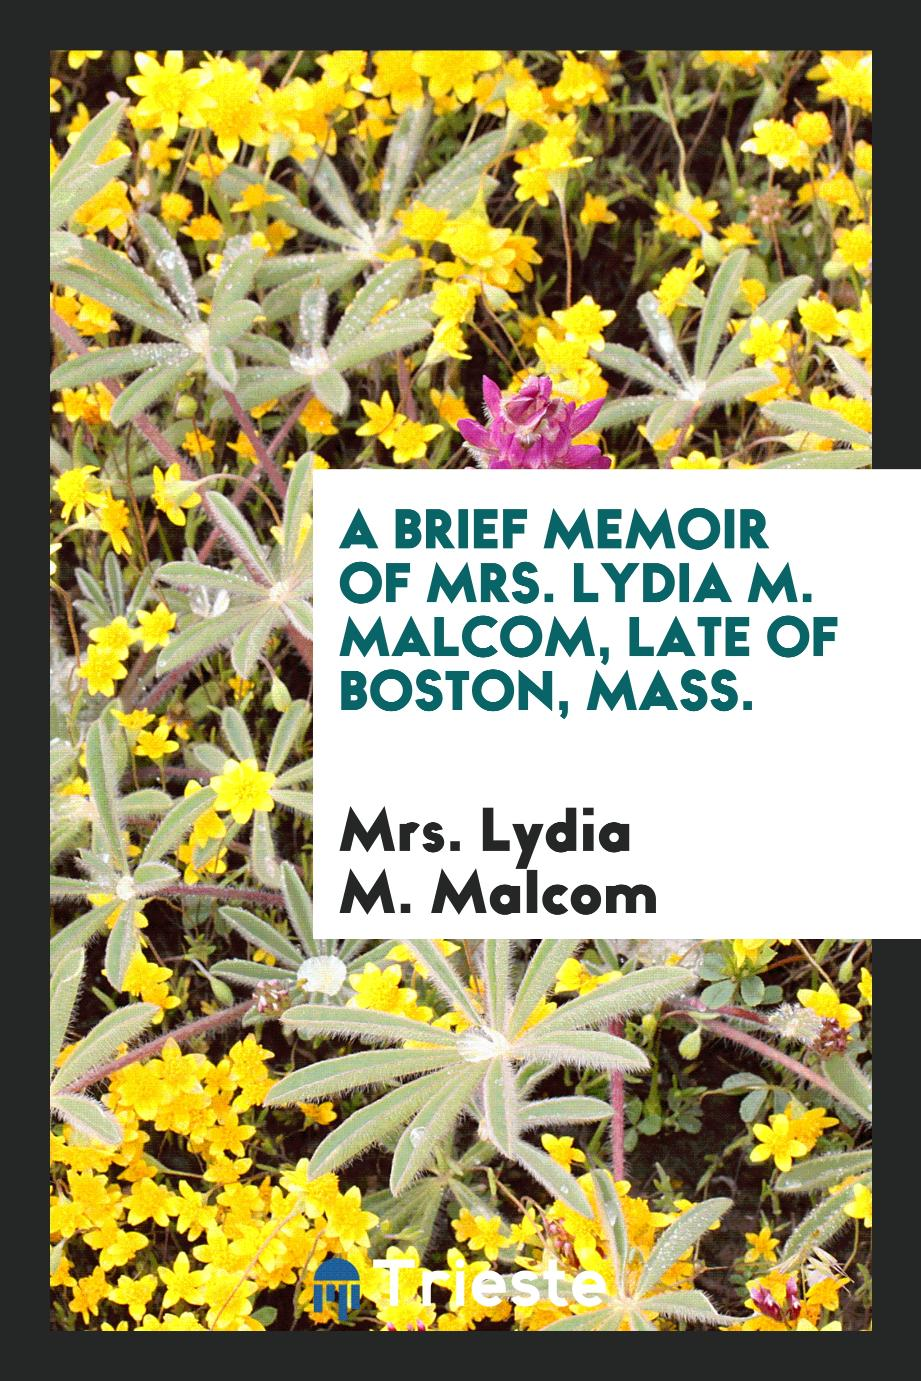 A Brief Memoir of Mrs. Lydia M. Malcom, Late of Boston, Mass.